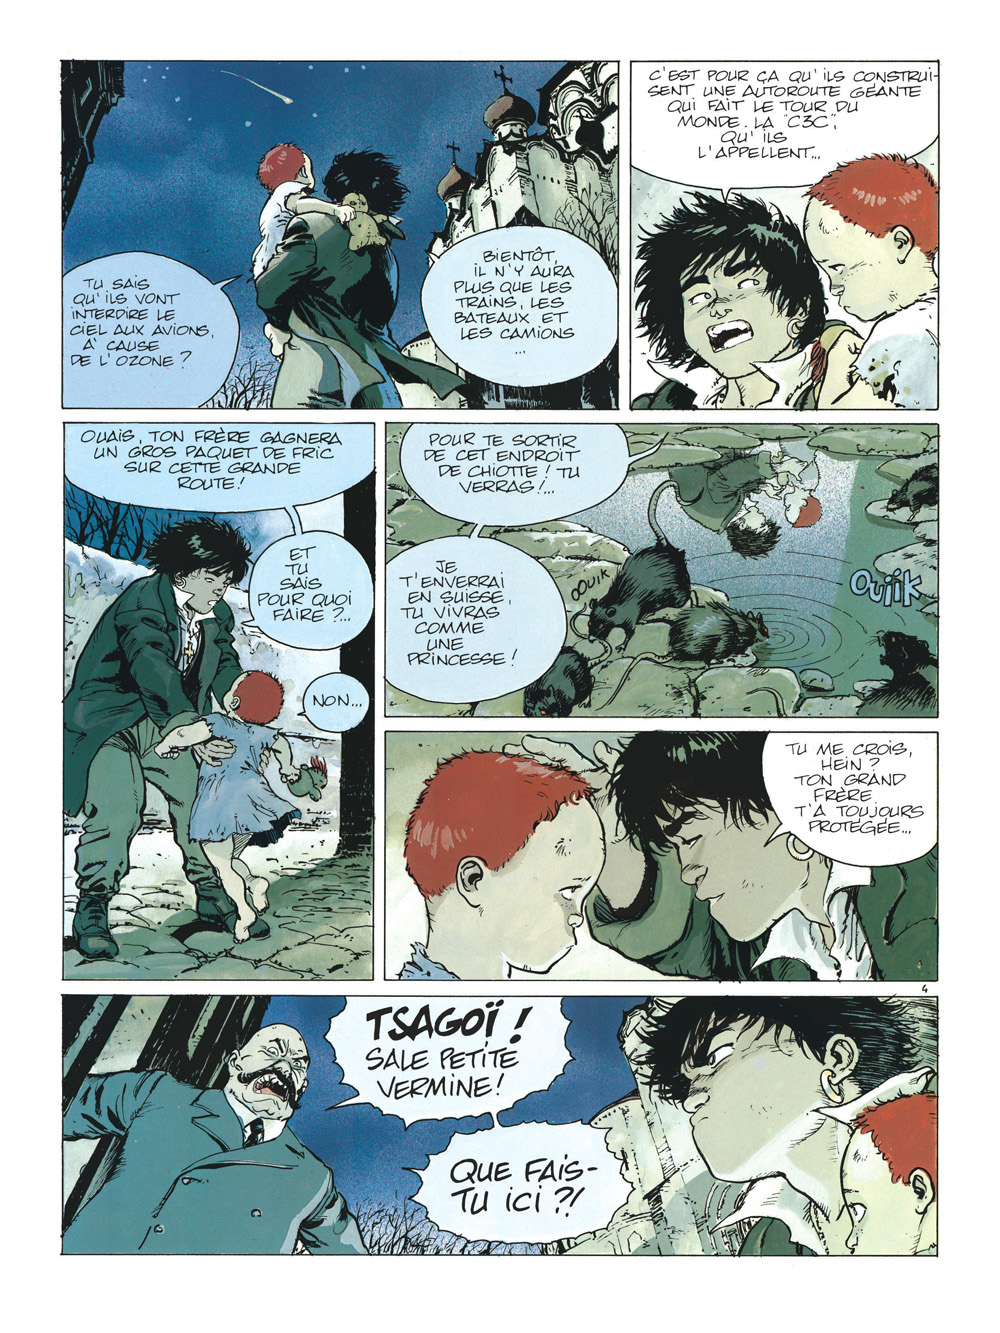 gipsy intégrale planche 4